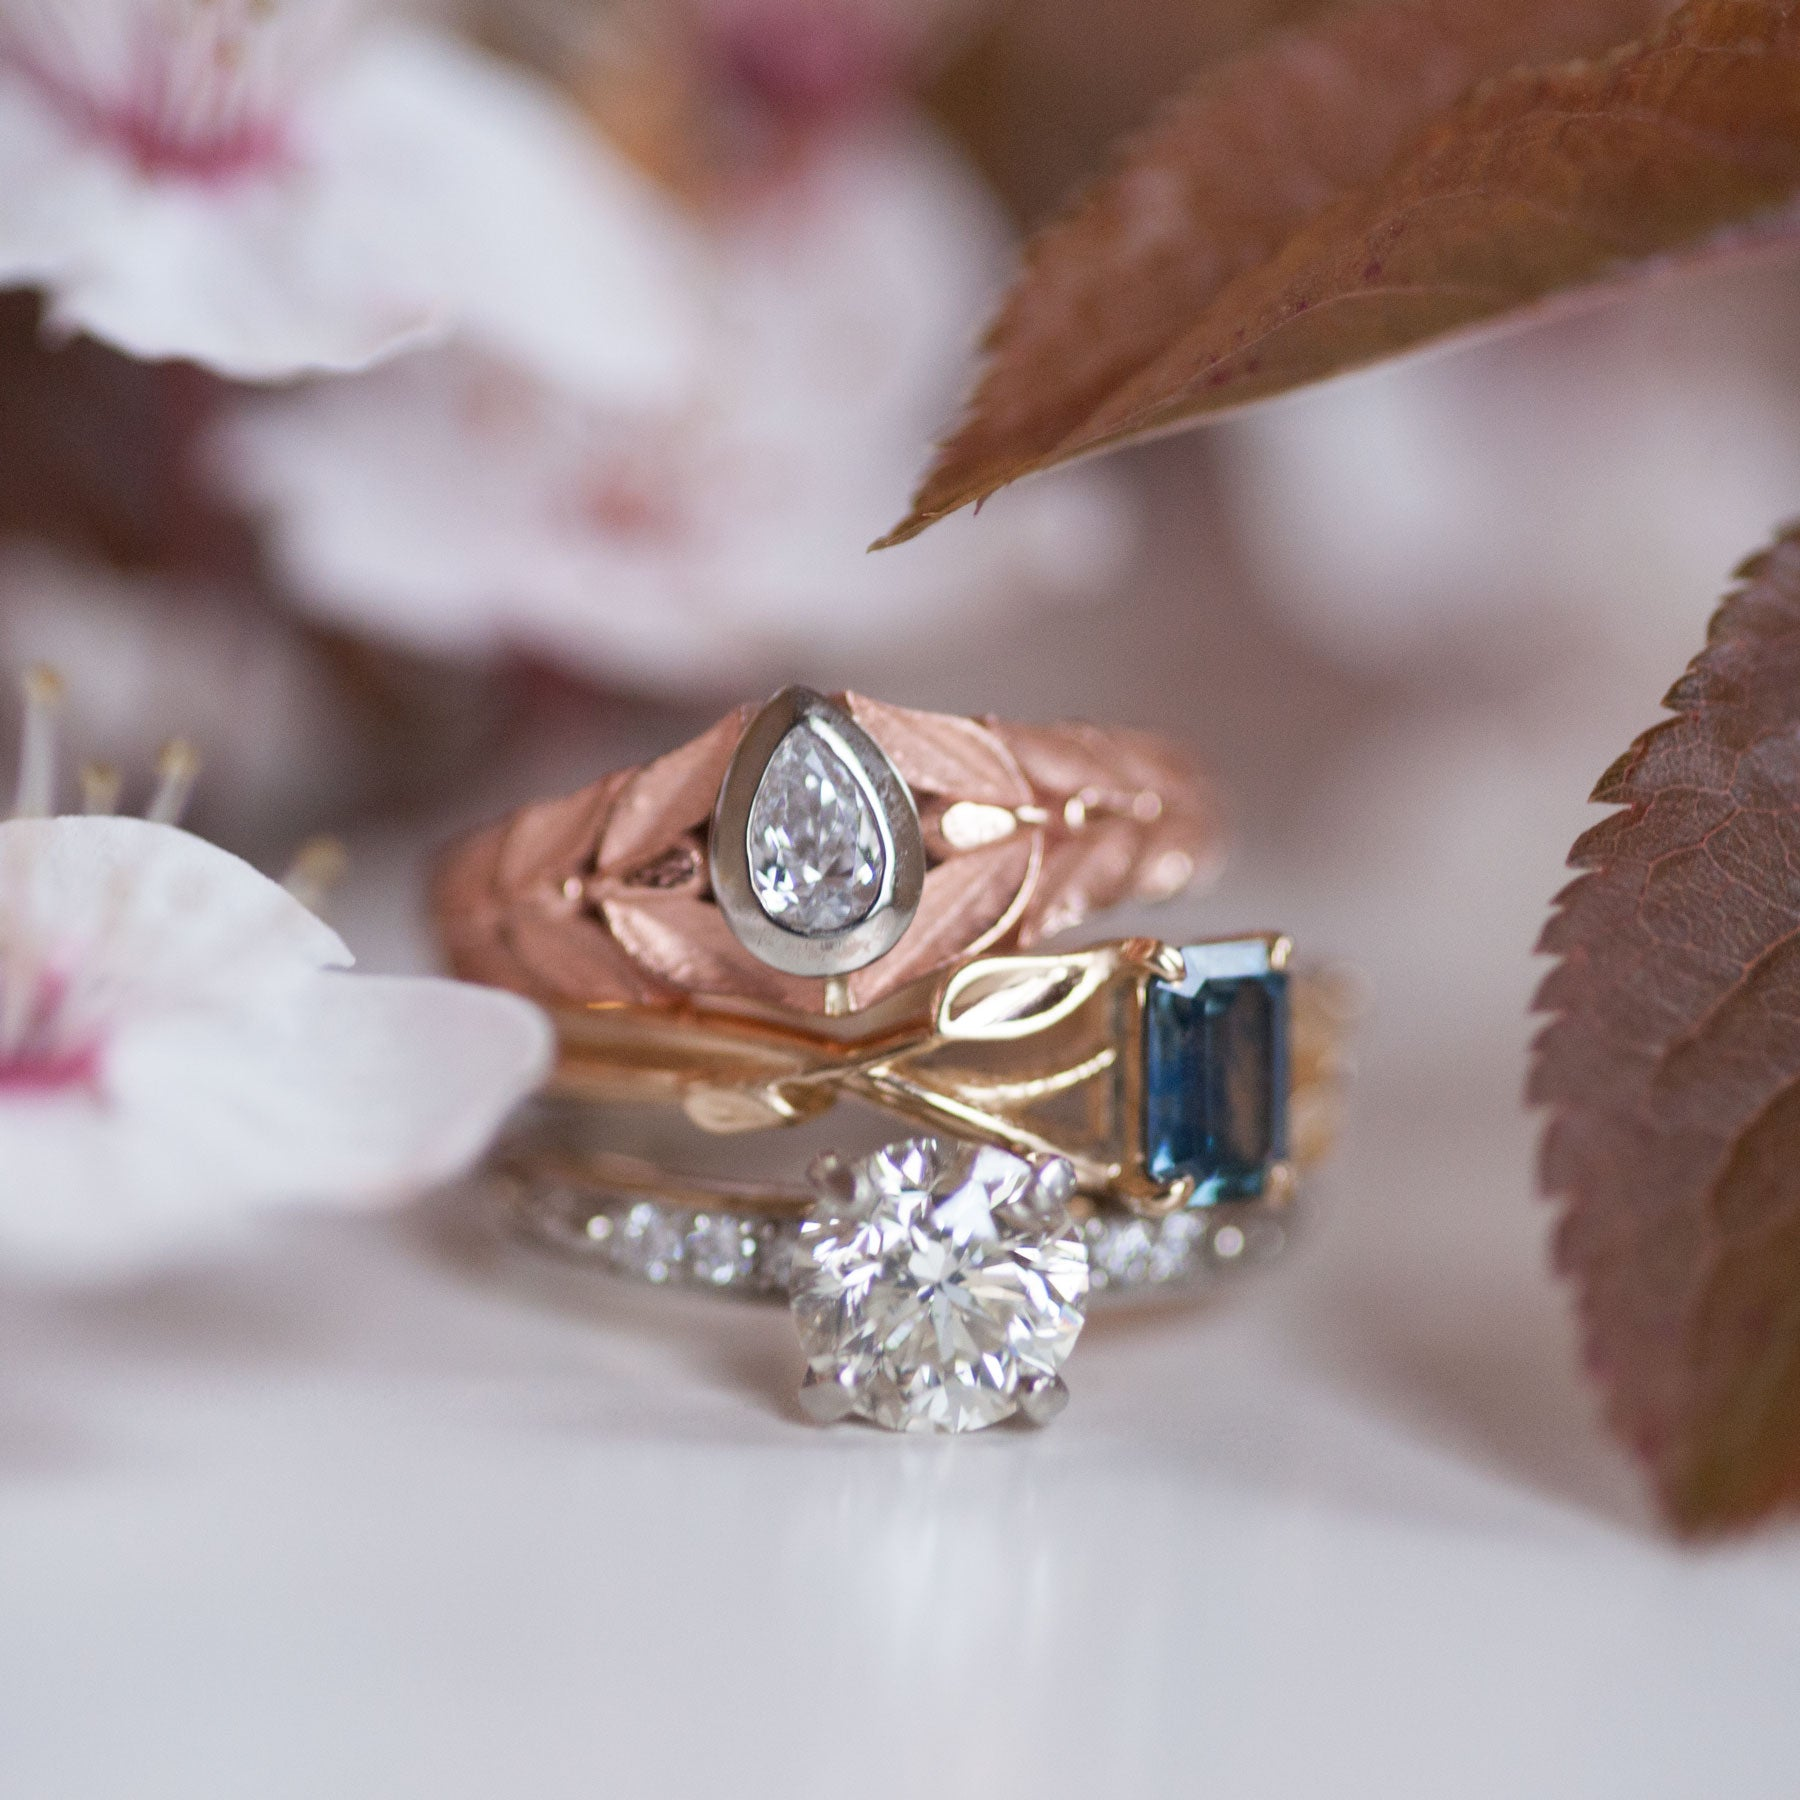 adorable sparkleyyy stone pin rings is just wedding underneath pink little